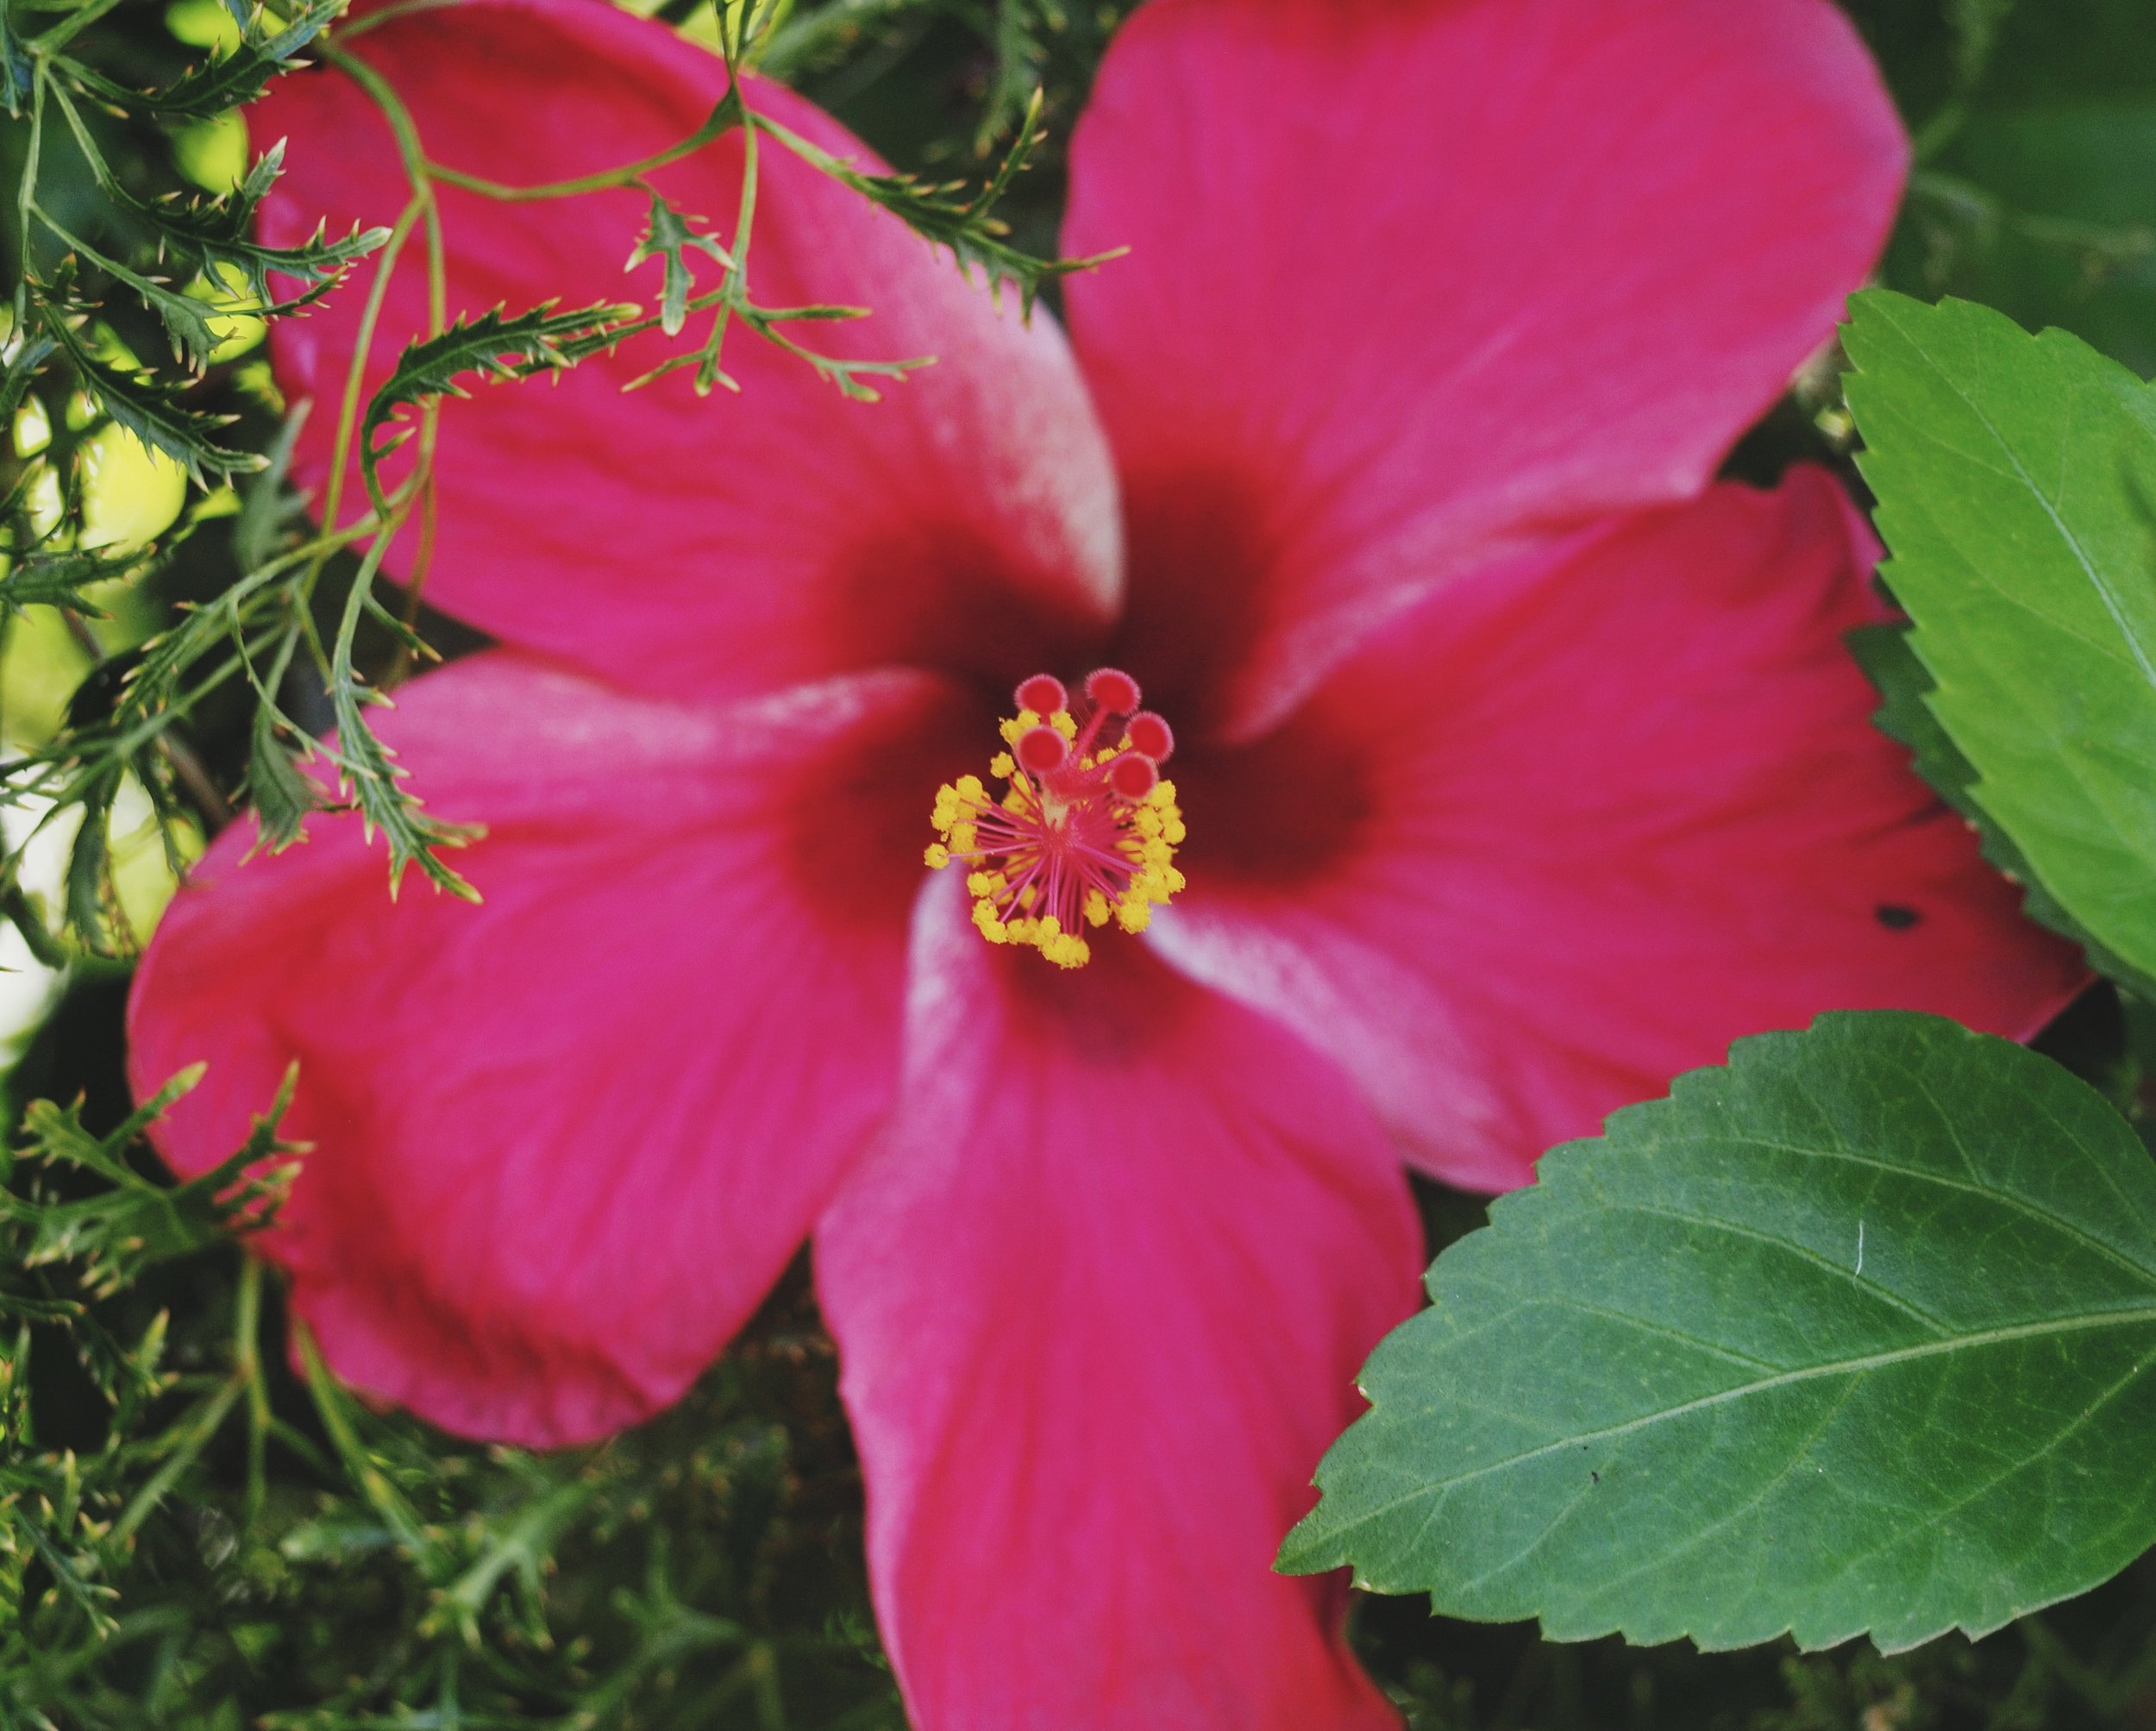 Nicaragua was covered in gorgeous flowers!